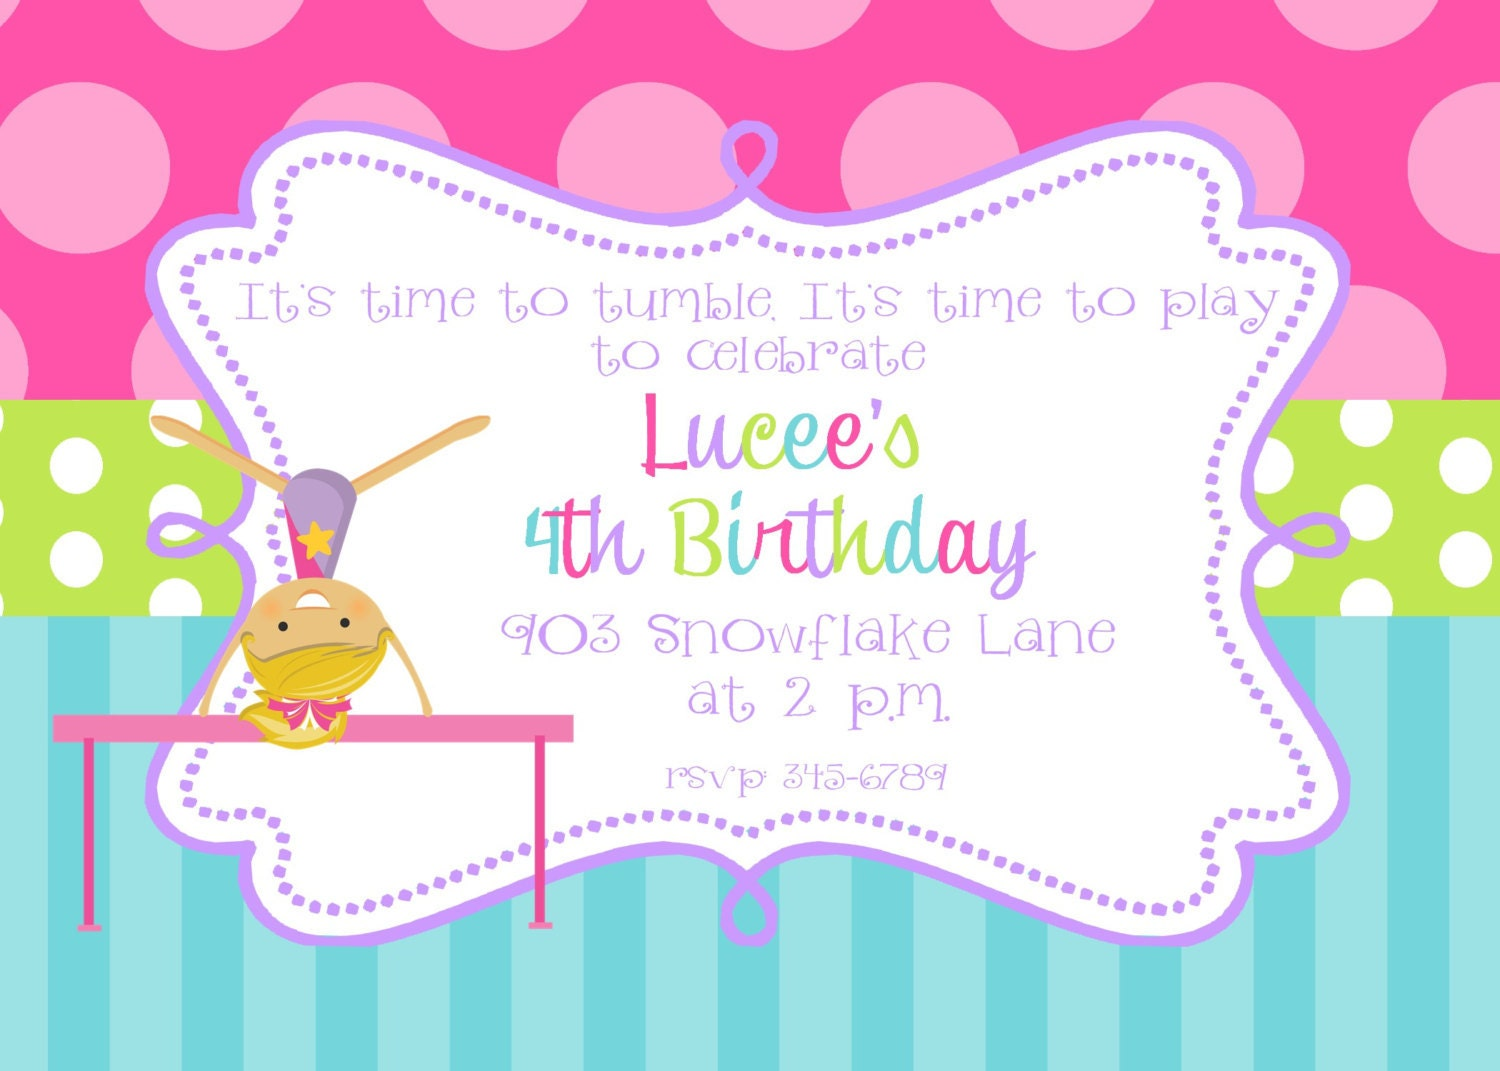 Gymnastics Party Invitations for your inspiration to make invitation template look beautiful